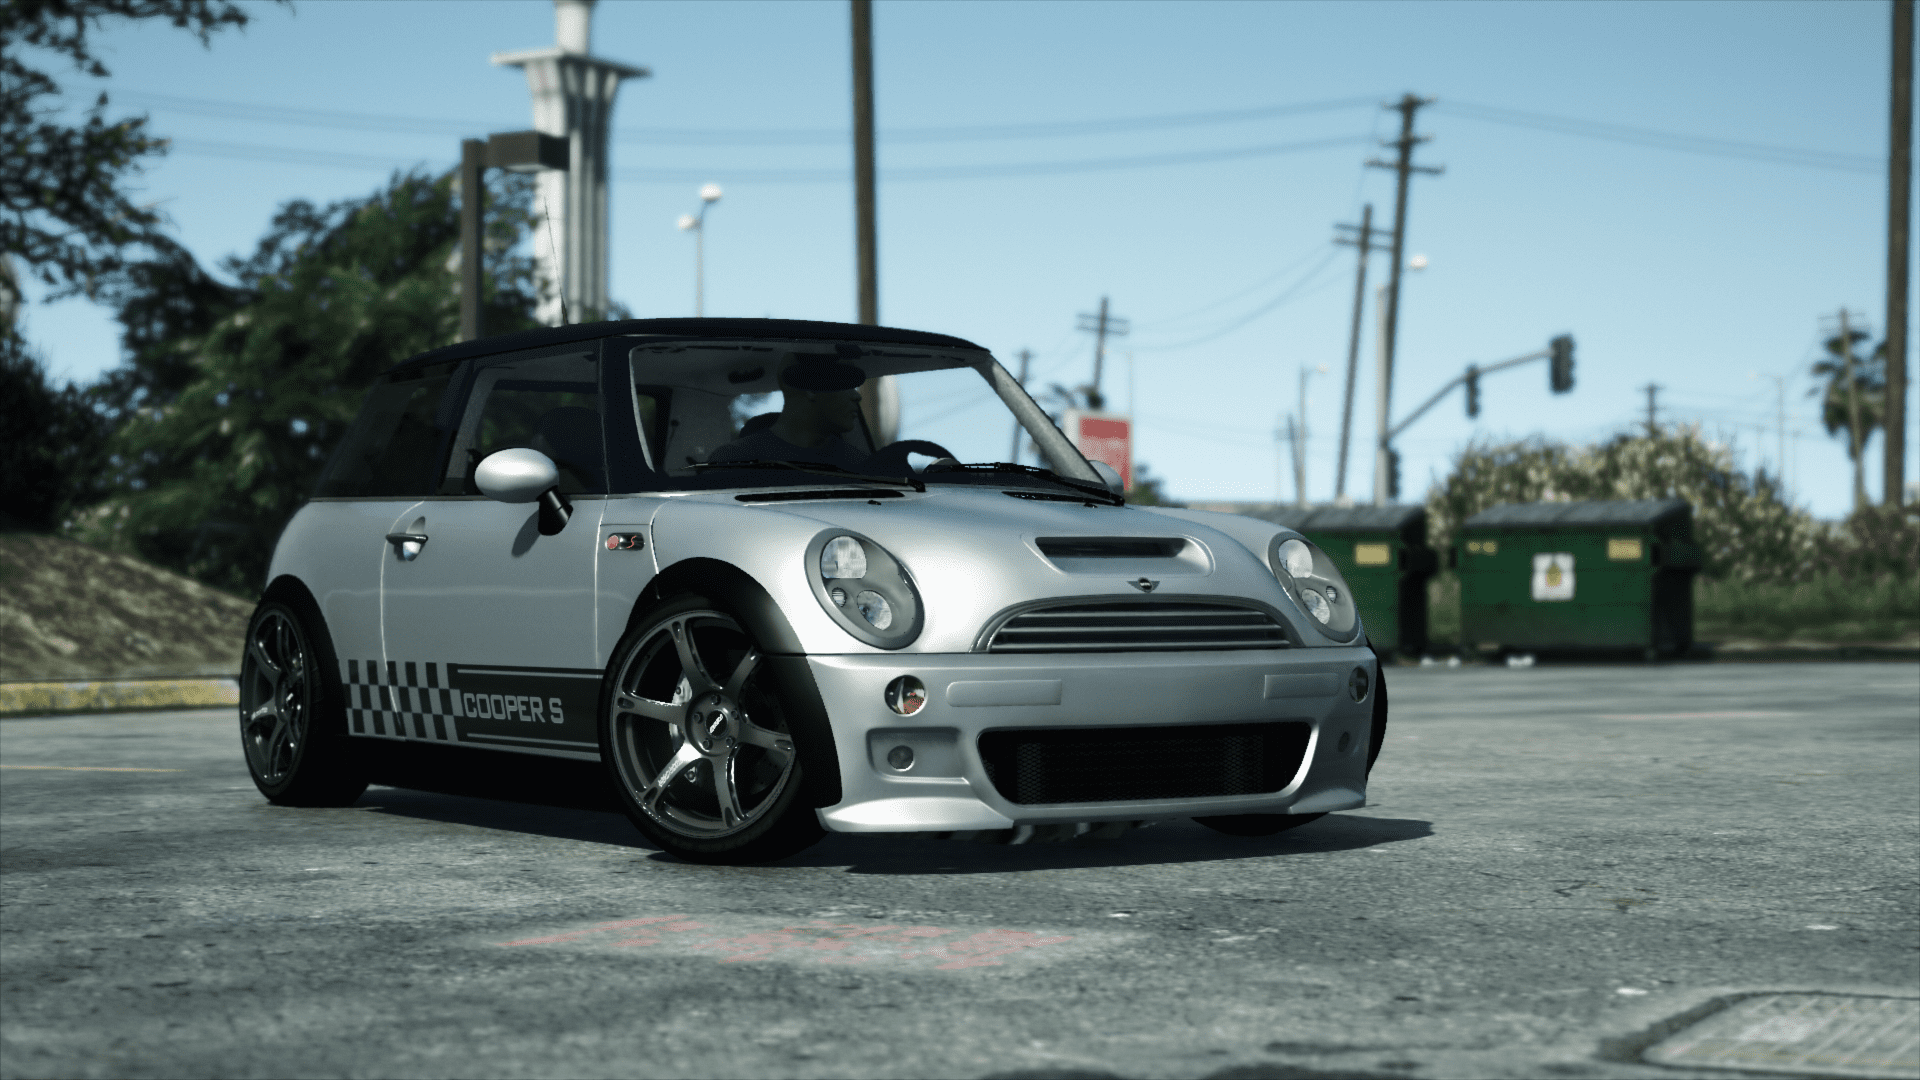 mini cooper s r53 add on tuning gta5. Black Bedroom Furniture Sets. Home Design Ideas